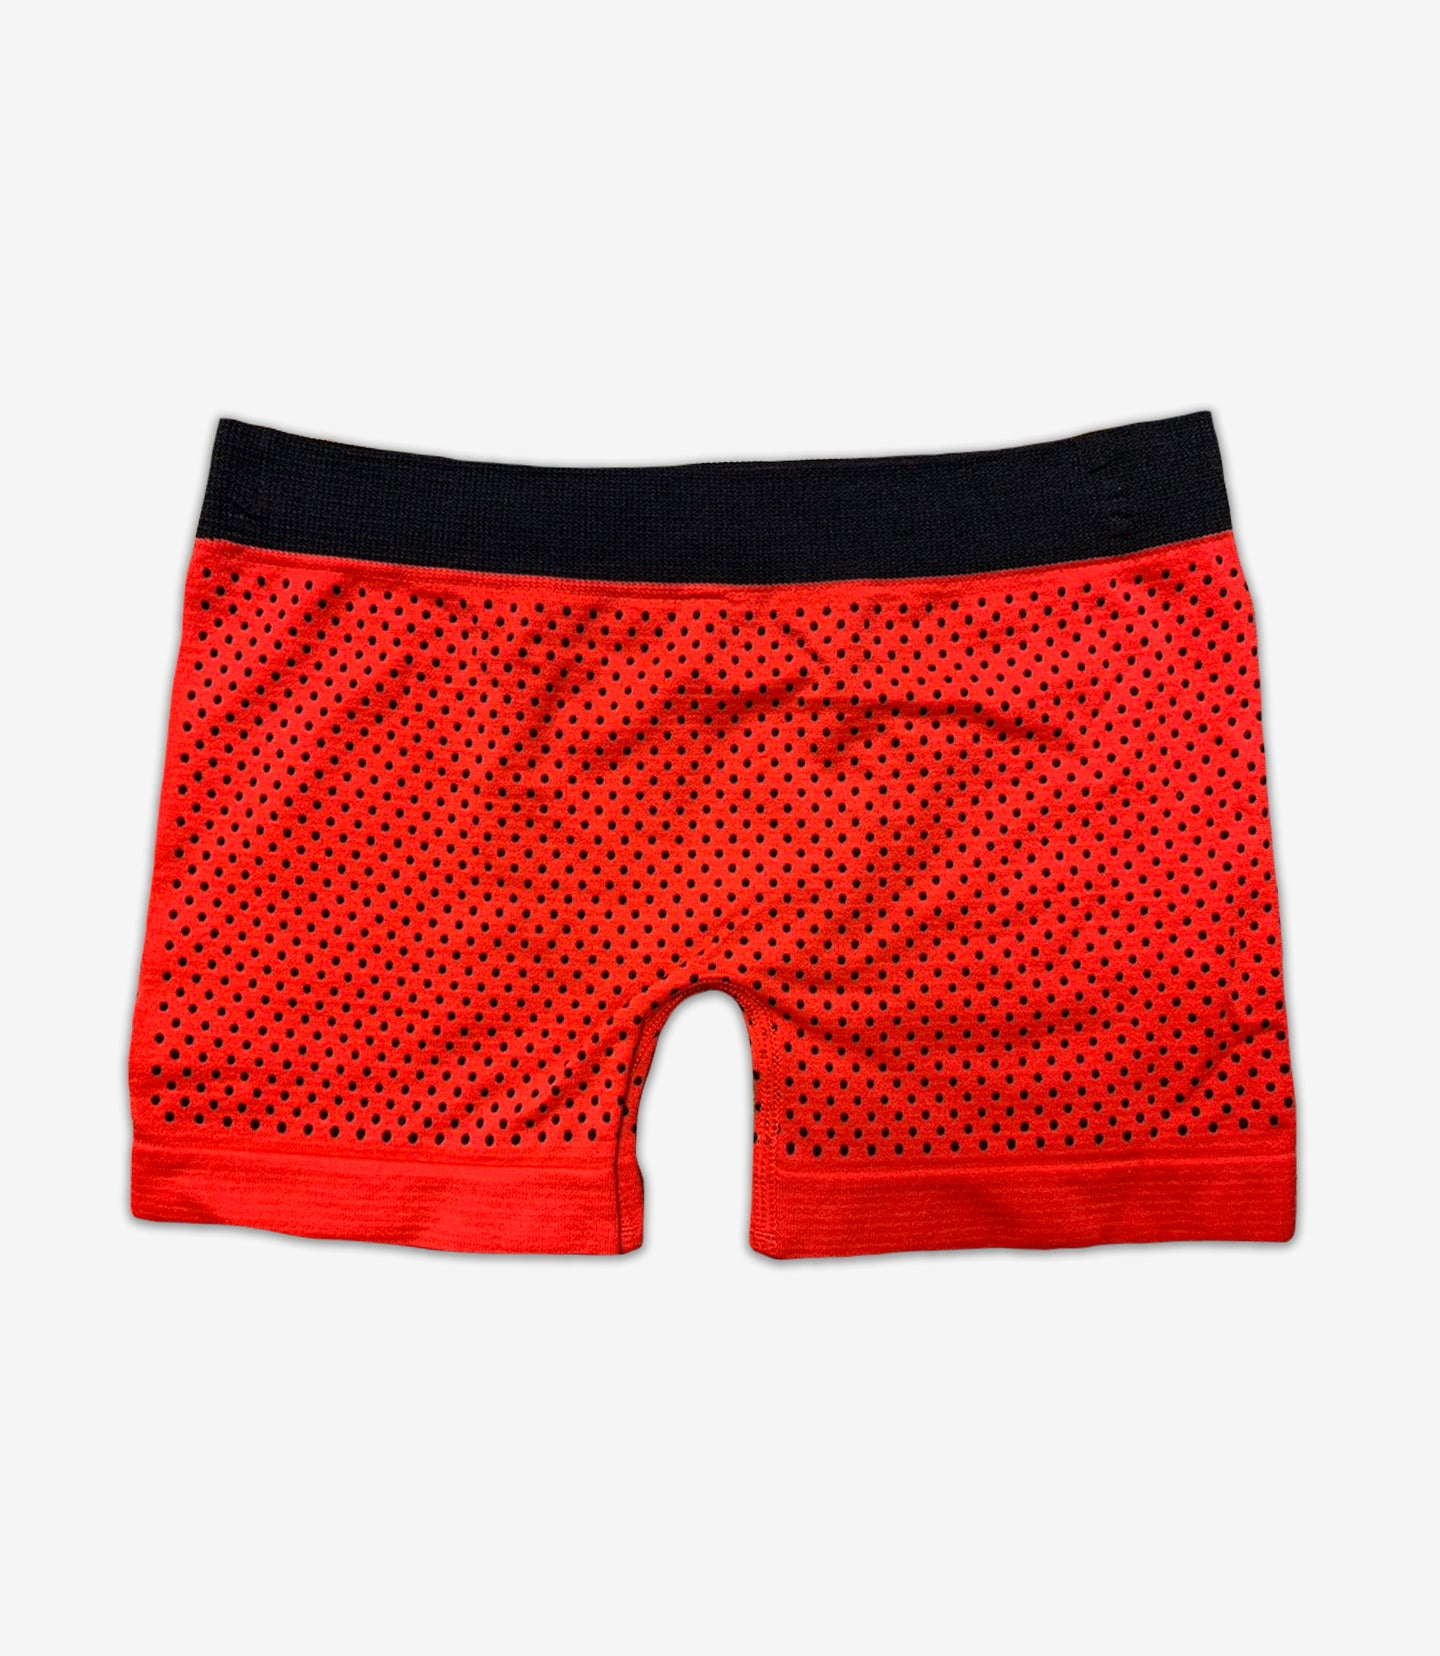 BOYS 2-7Y DOTTED SEAMLESS BOXER D239EG